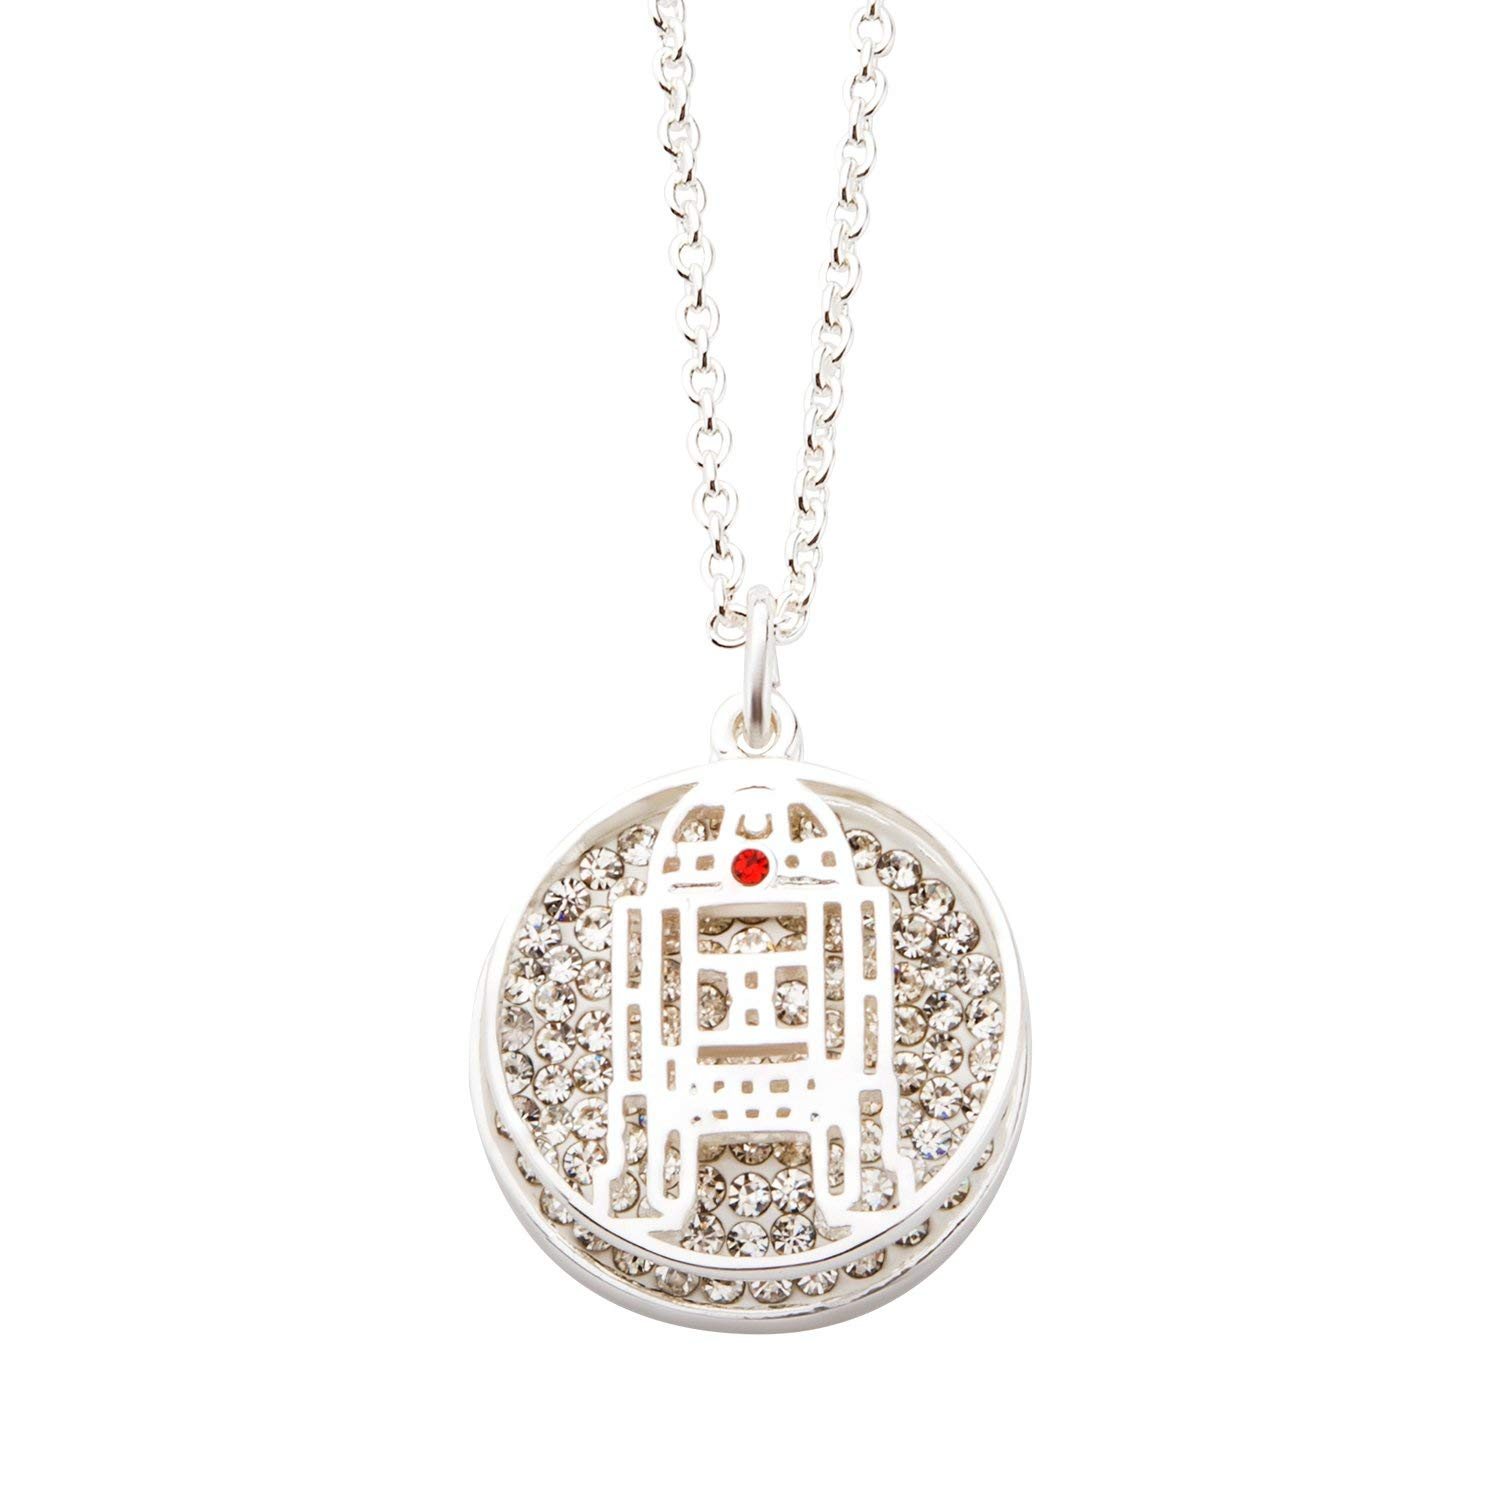 Body Vibe x Star Wars R2-D2 Clear Rhinestone Necklace on Amazon